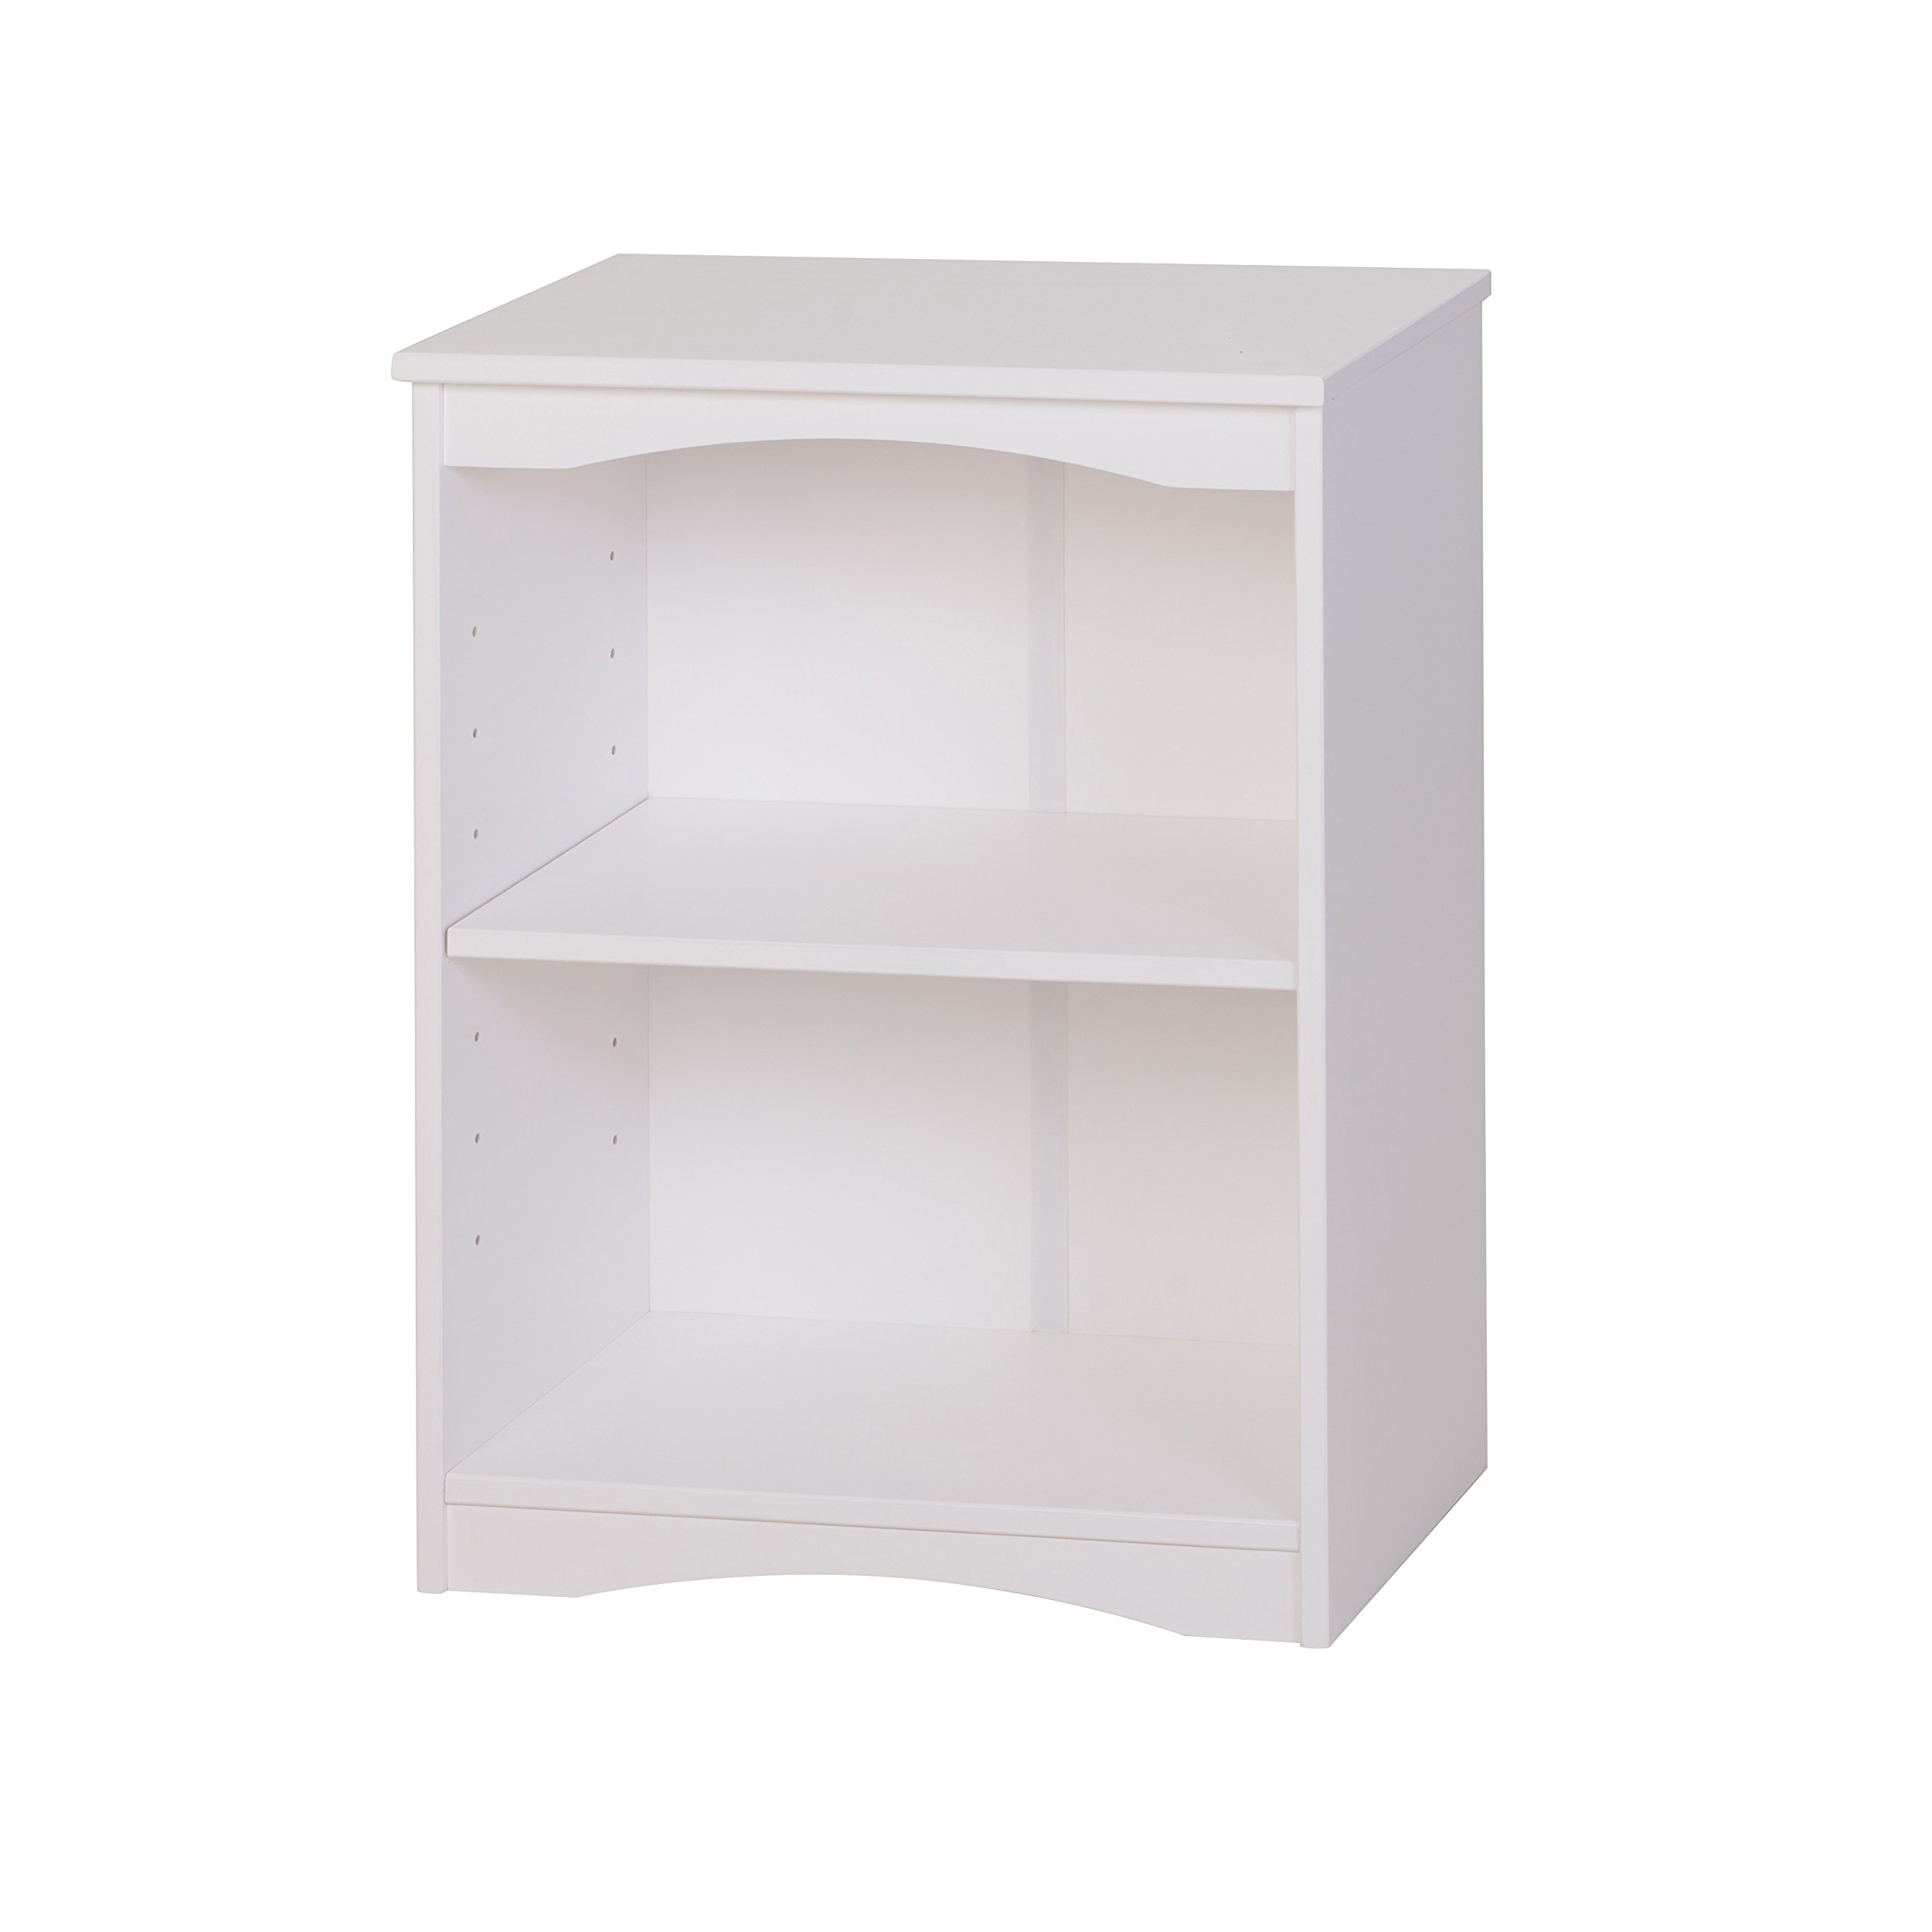 Camaflexi Essentials Wooden Bookcase, 30.5'' H x 23'' W x 12'' D, White